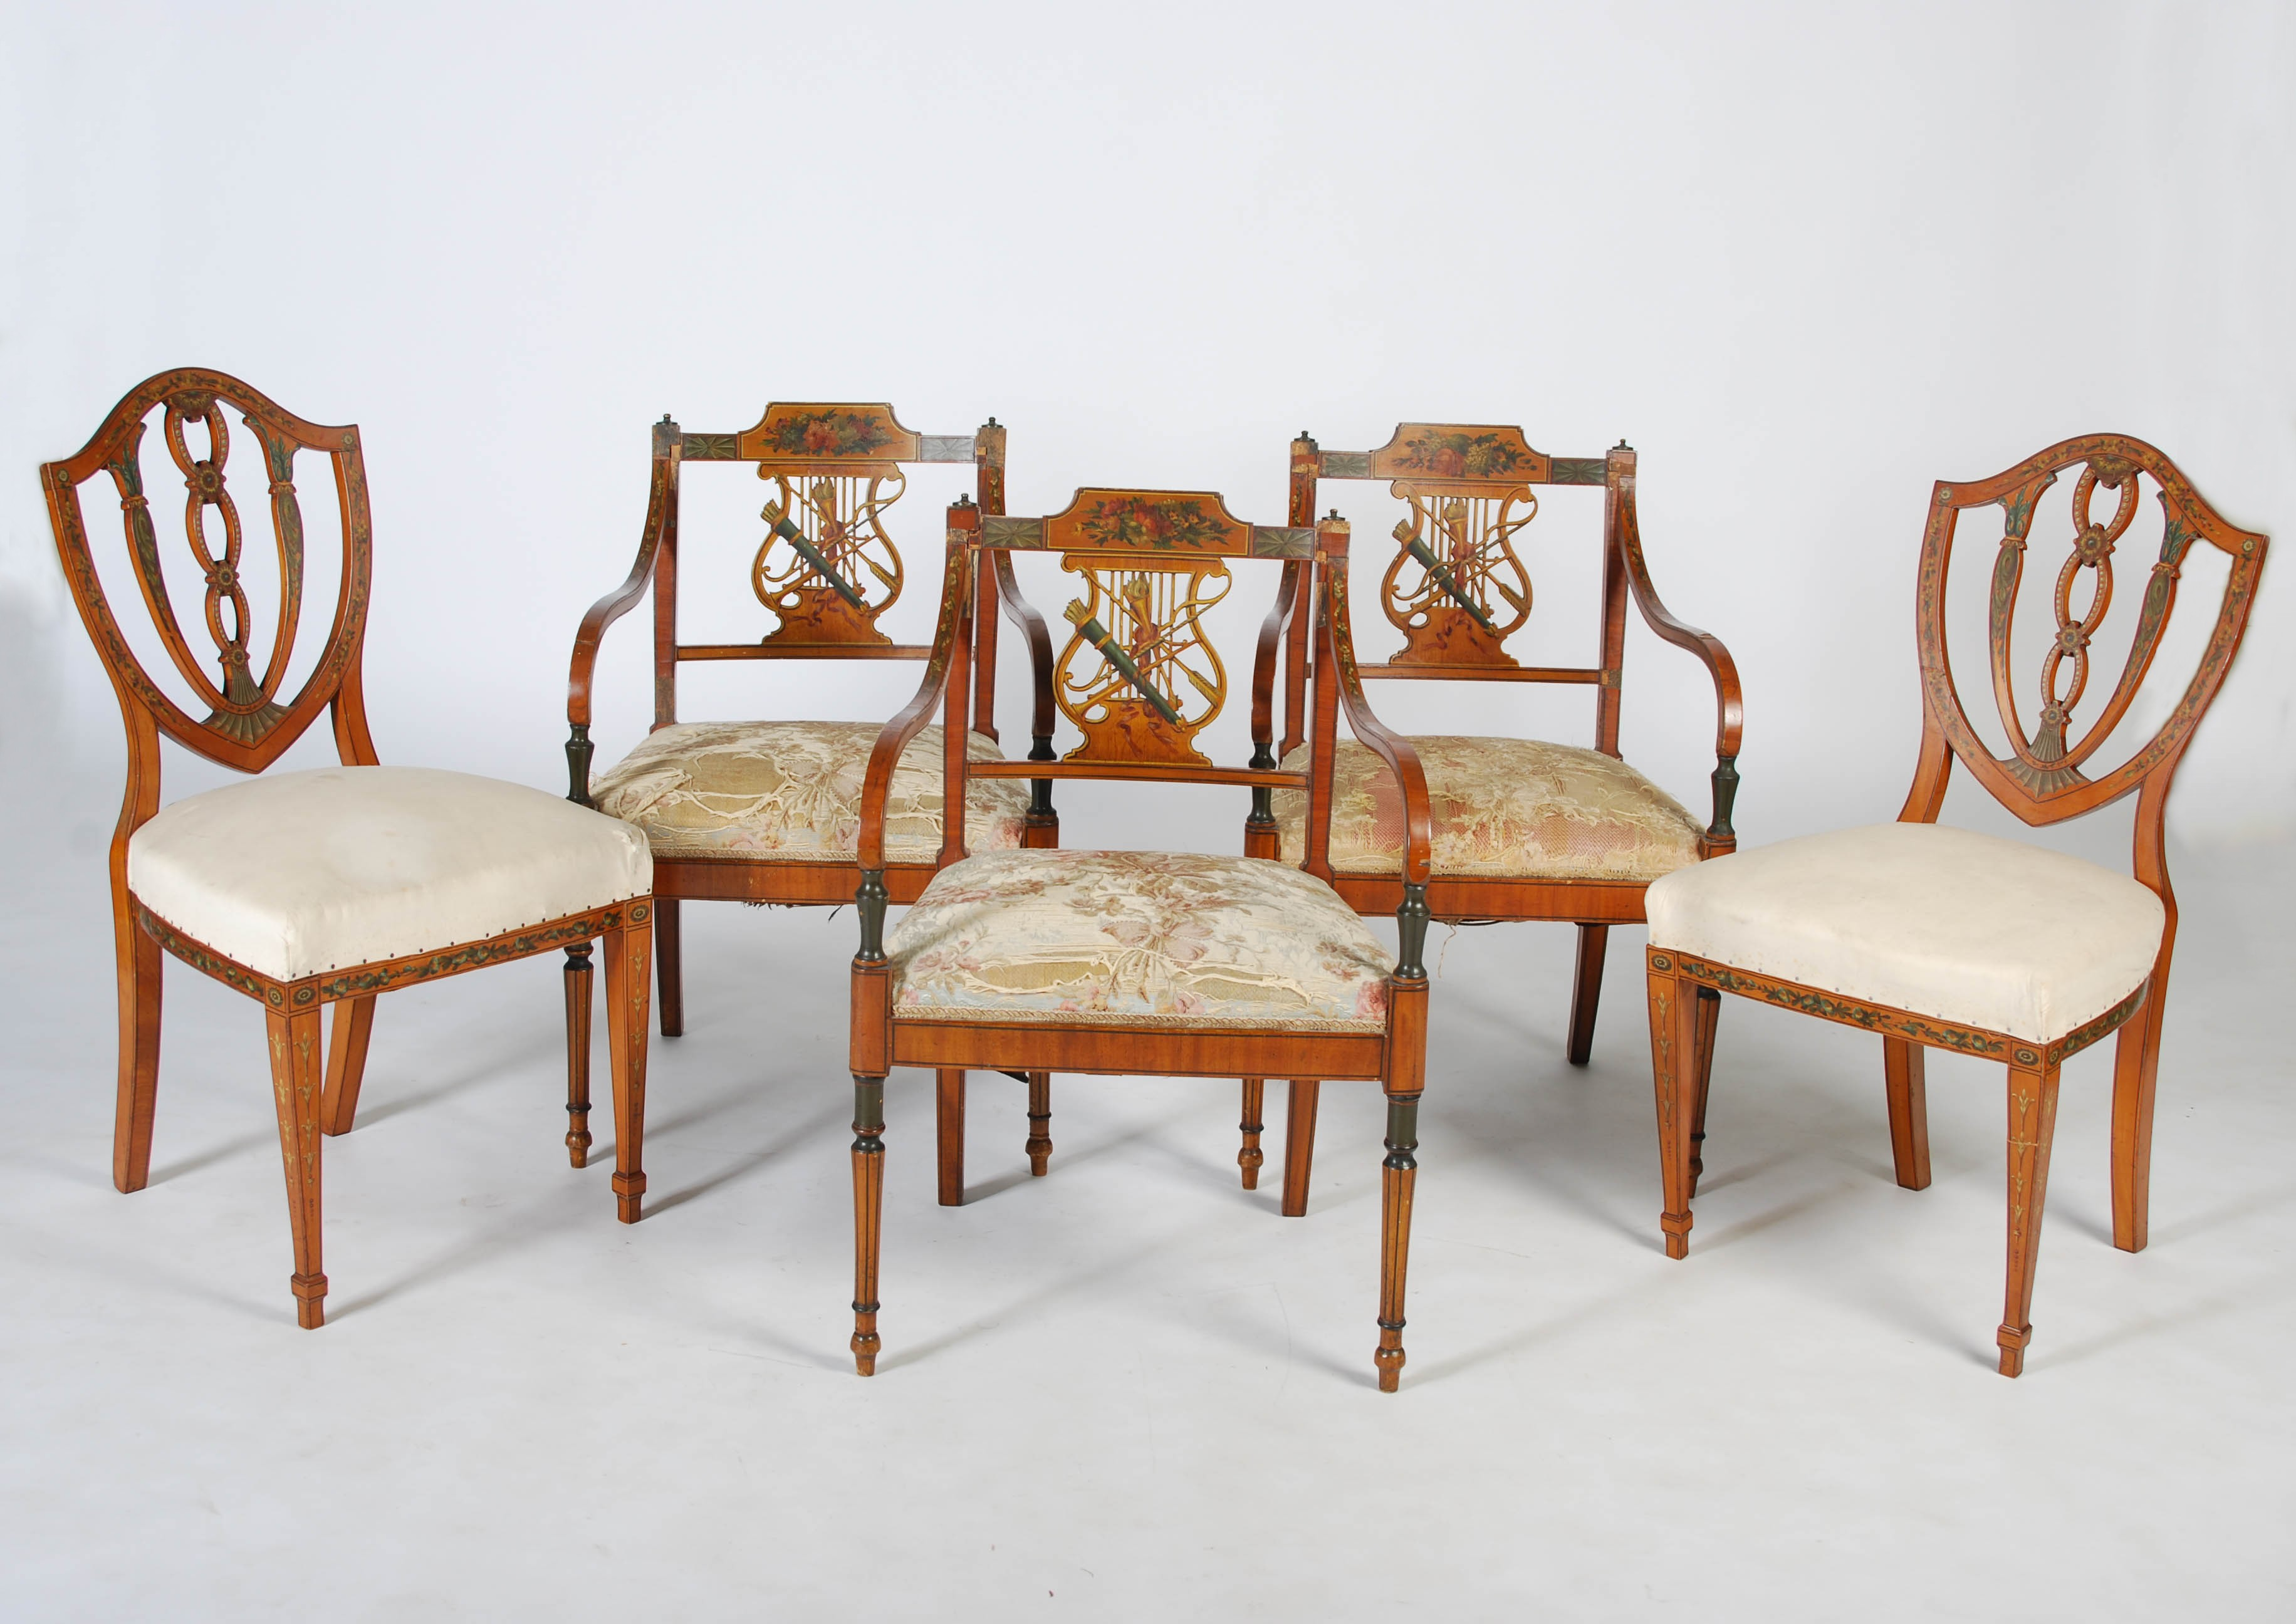 Lot 16 - A set of three 19th century painted satinwood armchairs and a pair of 19th century painted satinwood